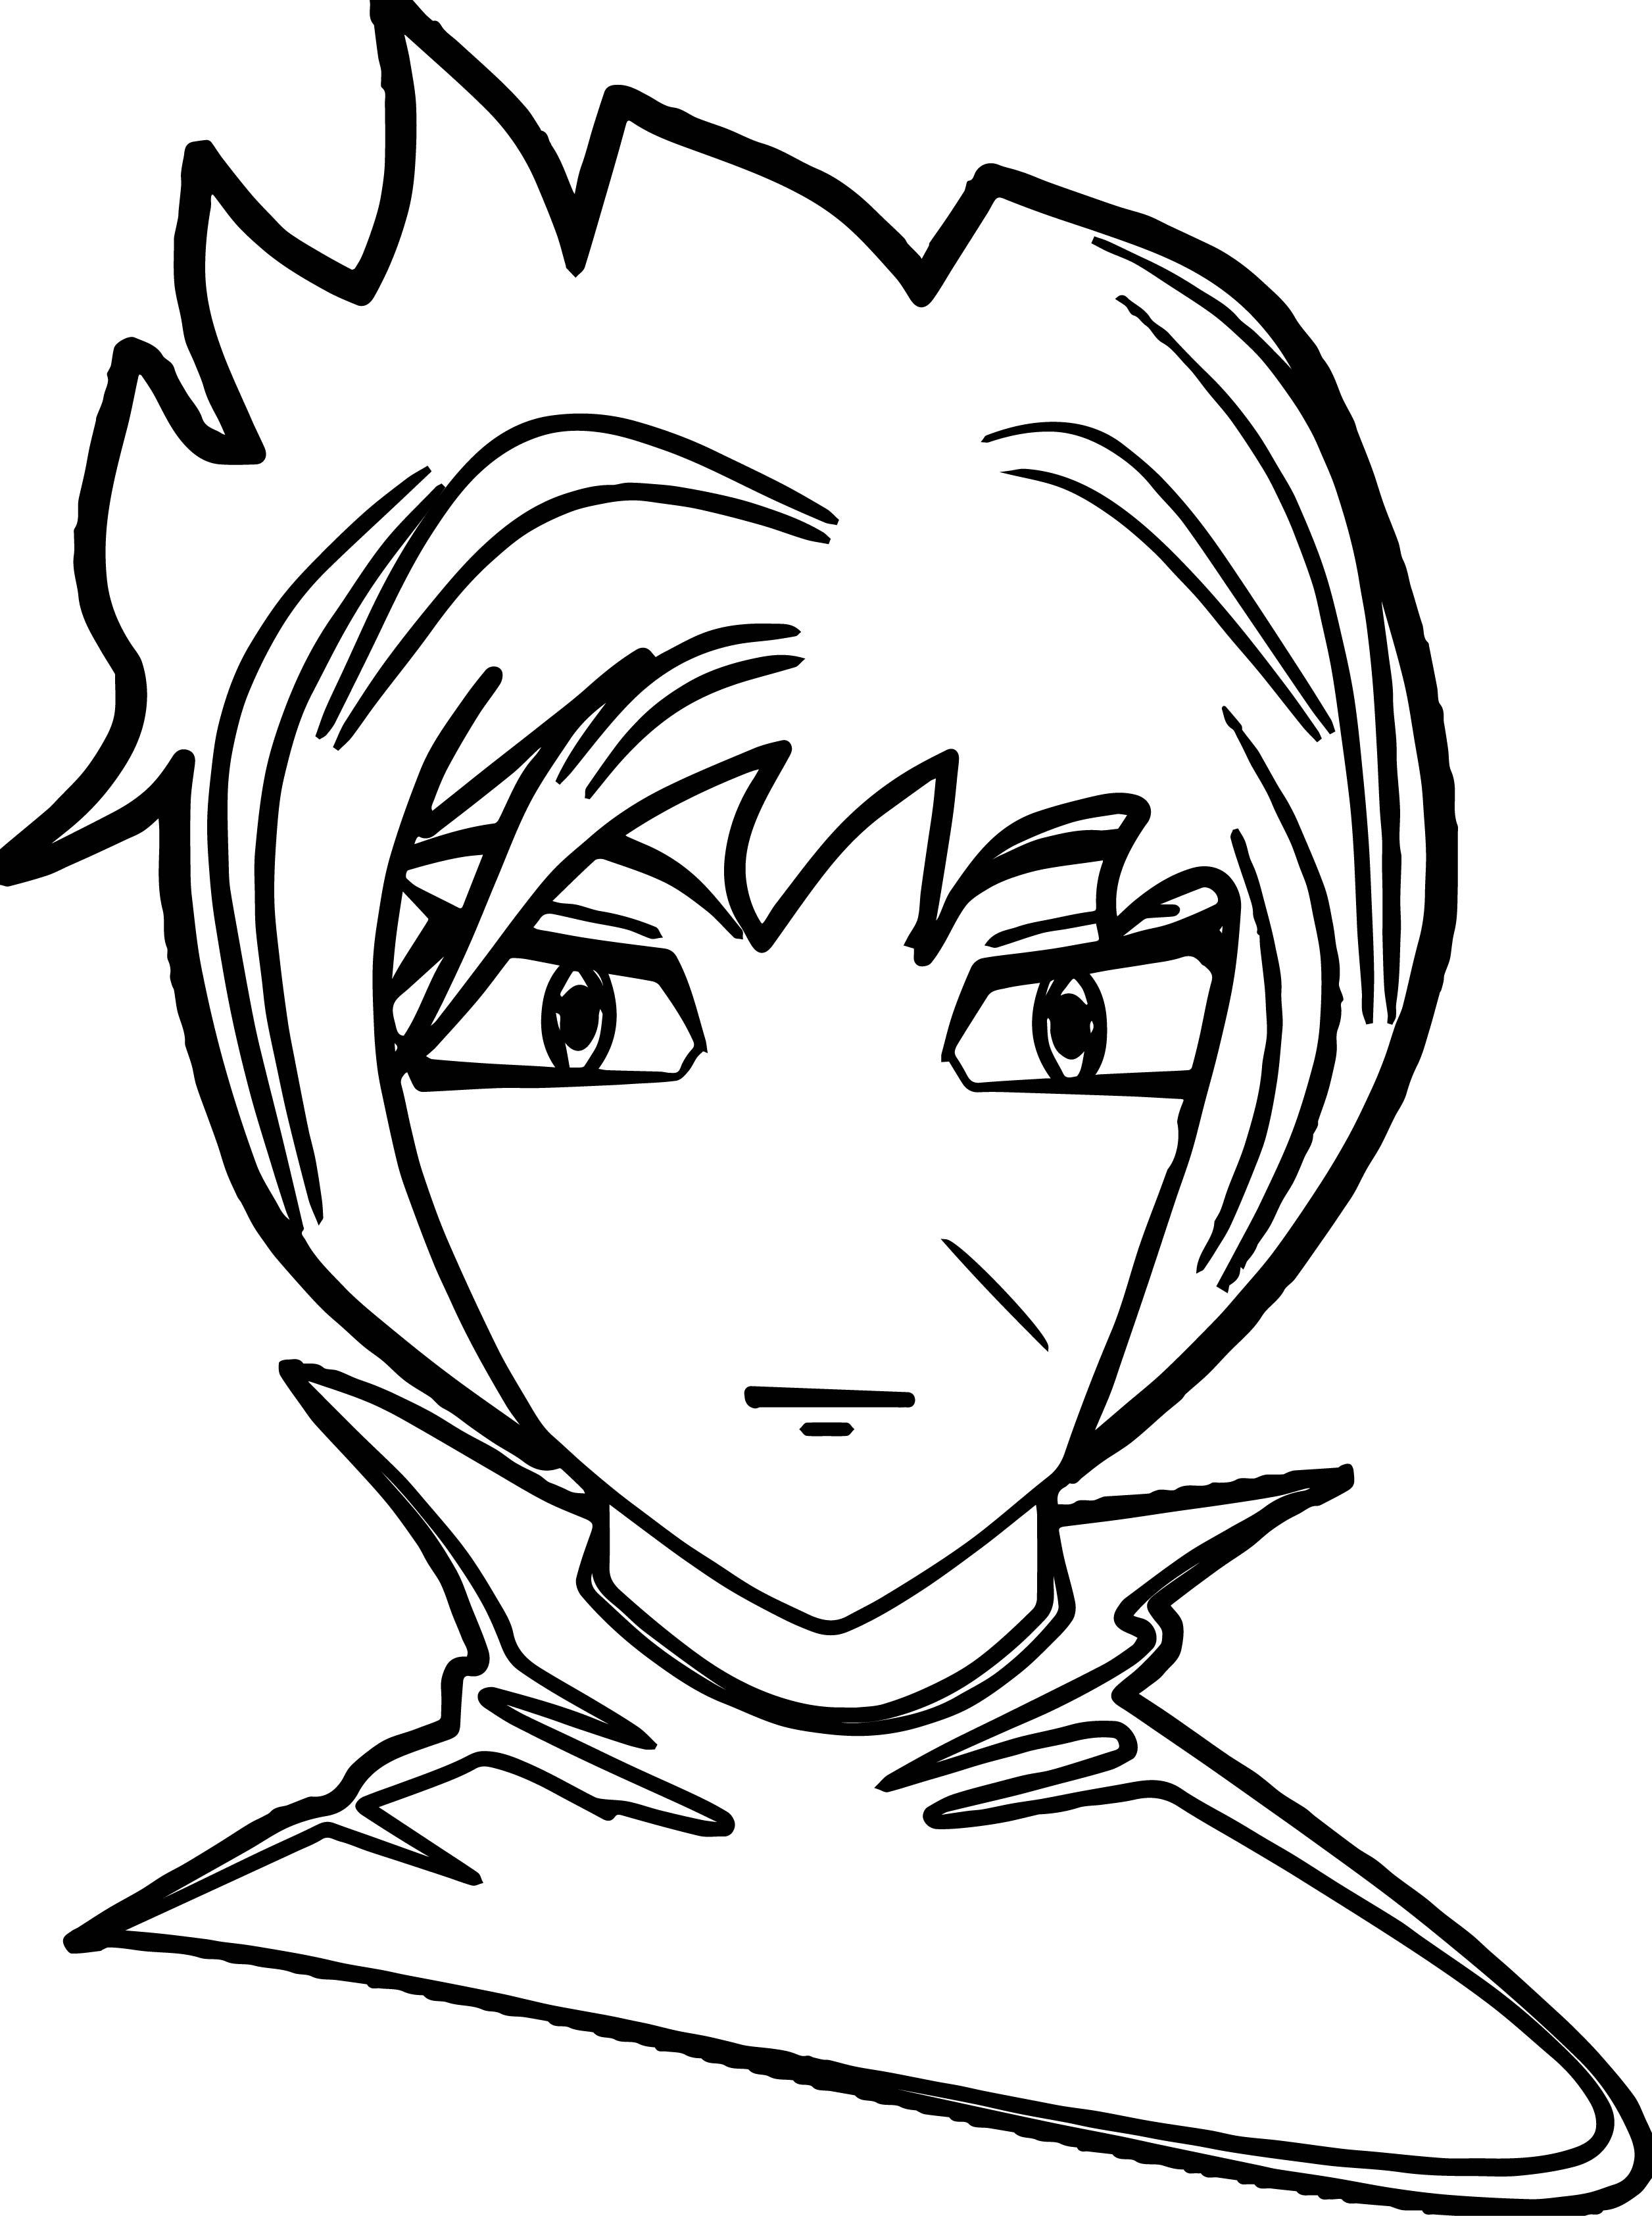 anime girl face coloring pages anime man face coloring page wecoloringpagecom face anime pages girl coloring